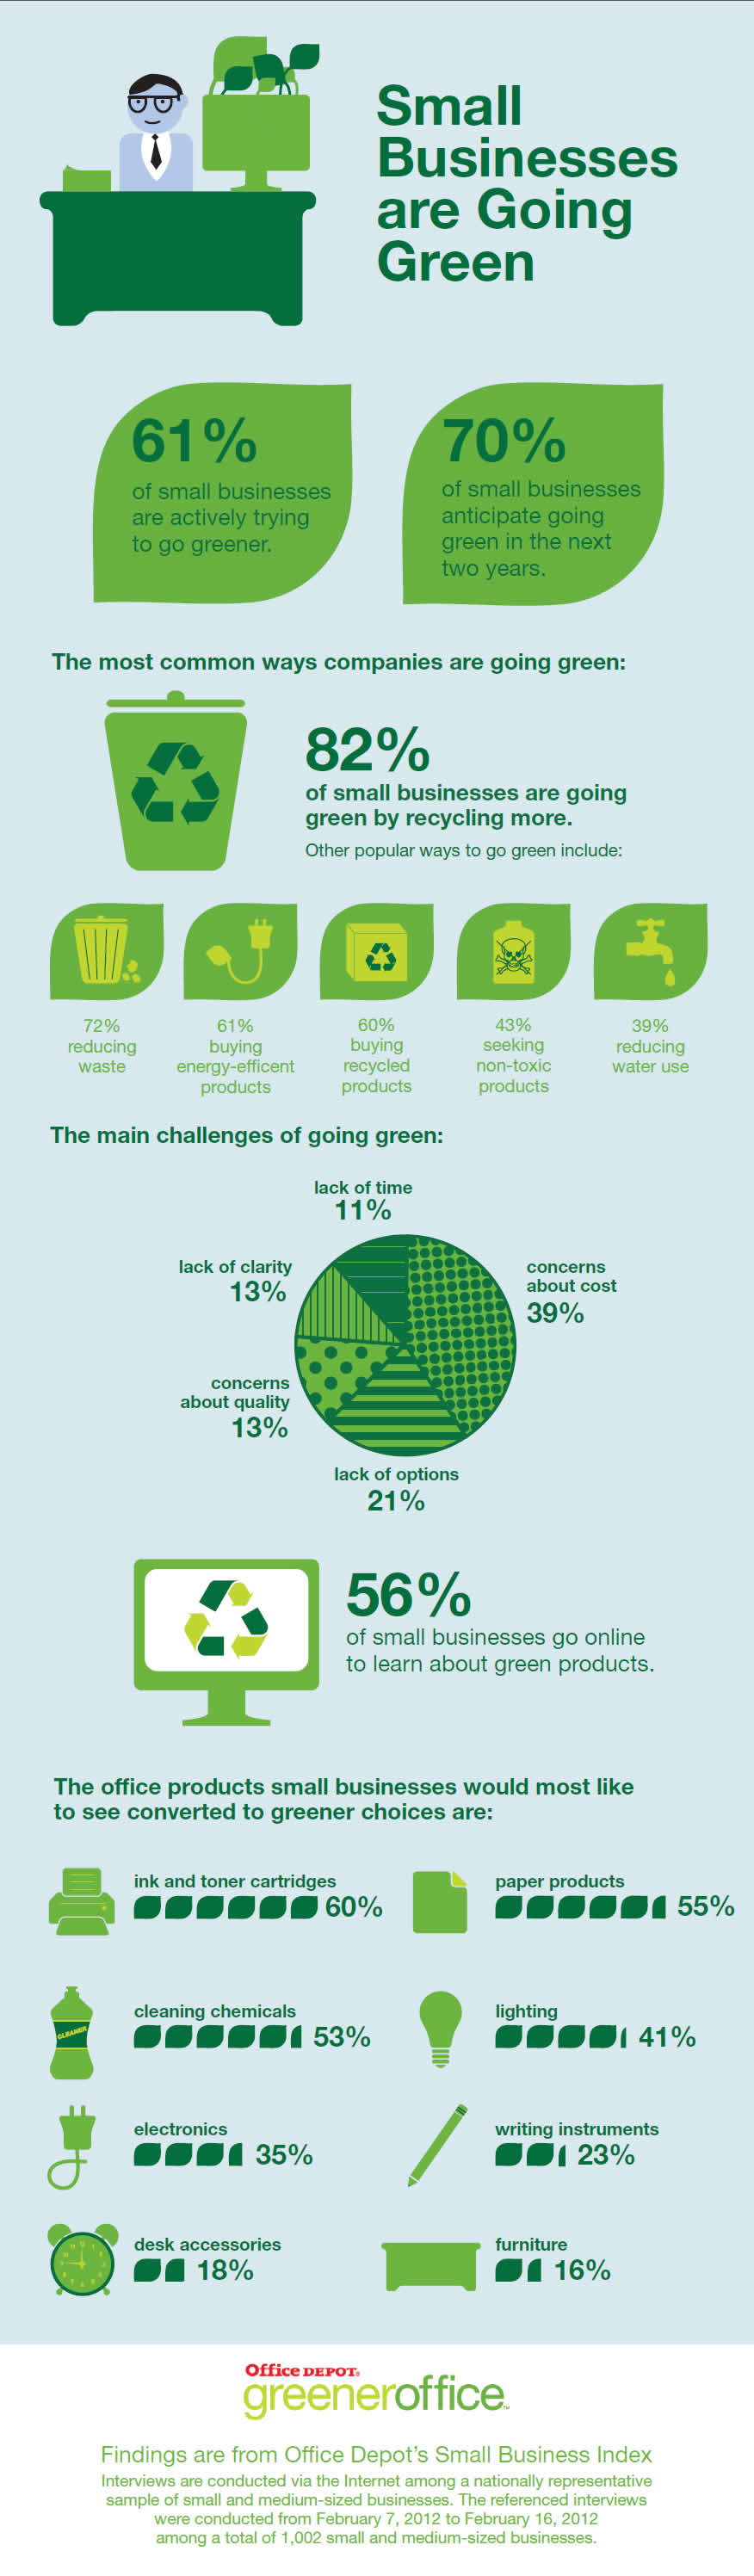 Office Depot Study Finds Small Businesses are Going Green - Infographic